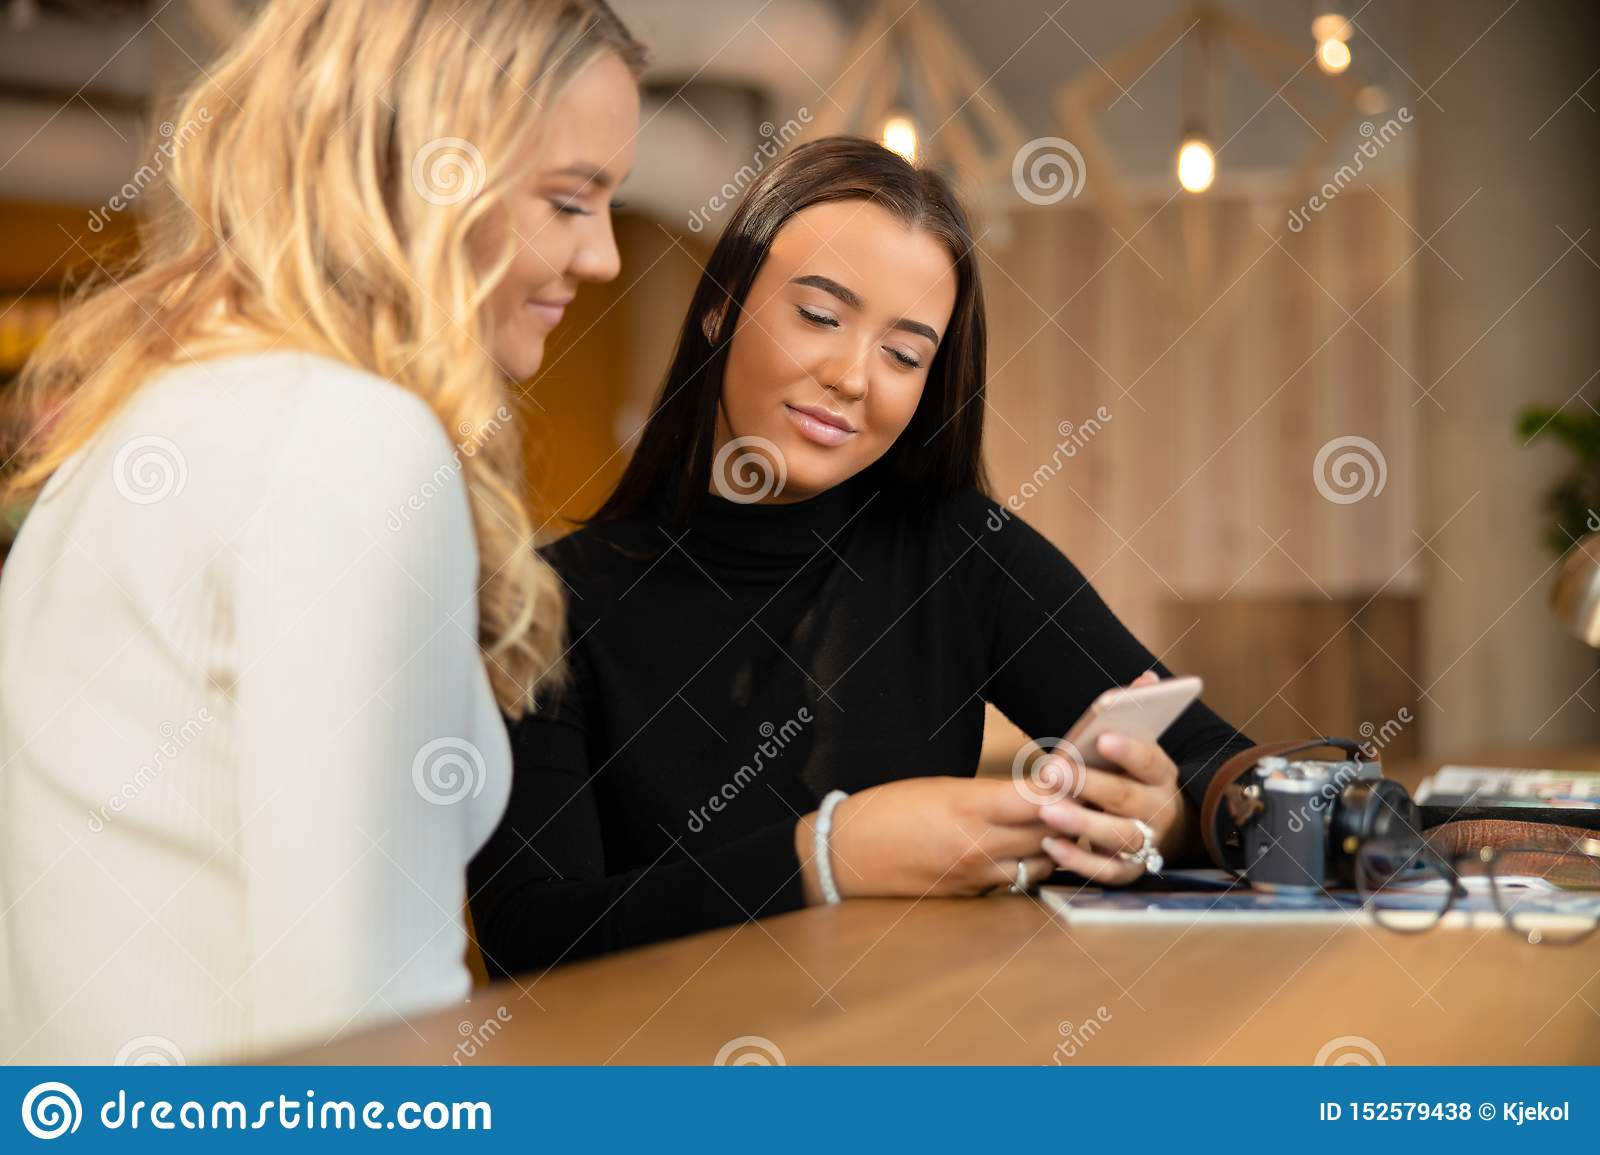 Two Smiling and Beautiful Young Friends Looking At Smartphone In Cafe